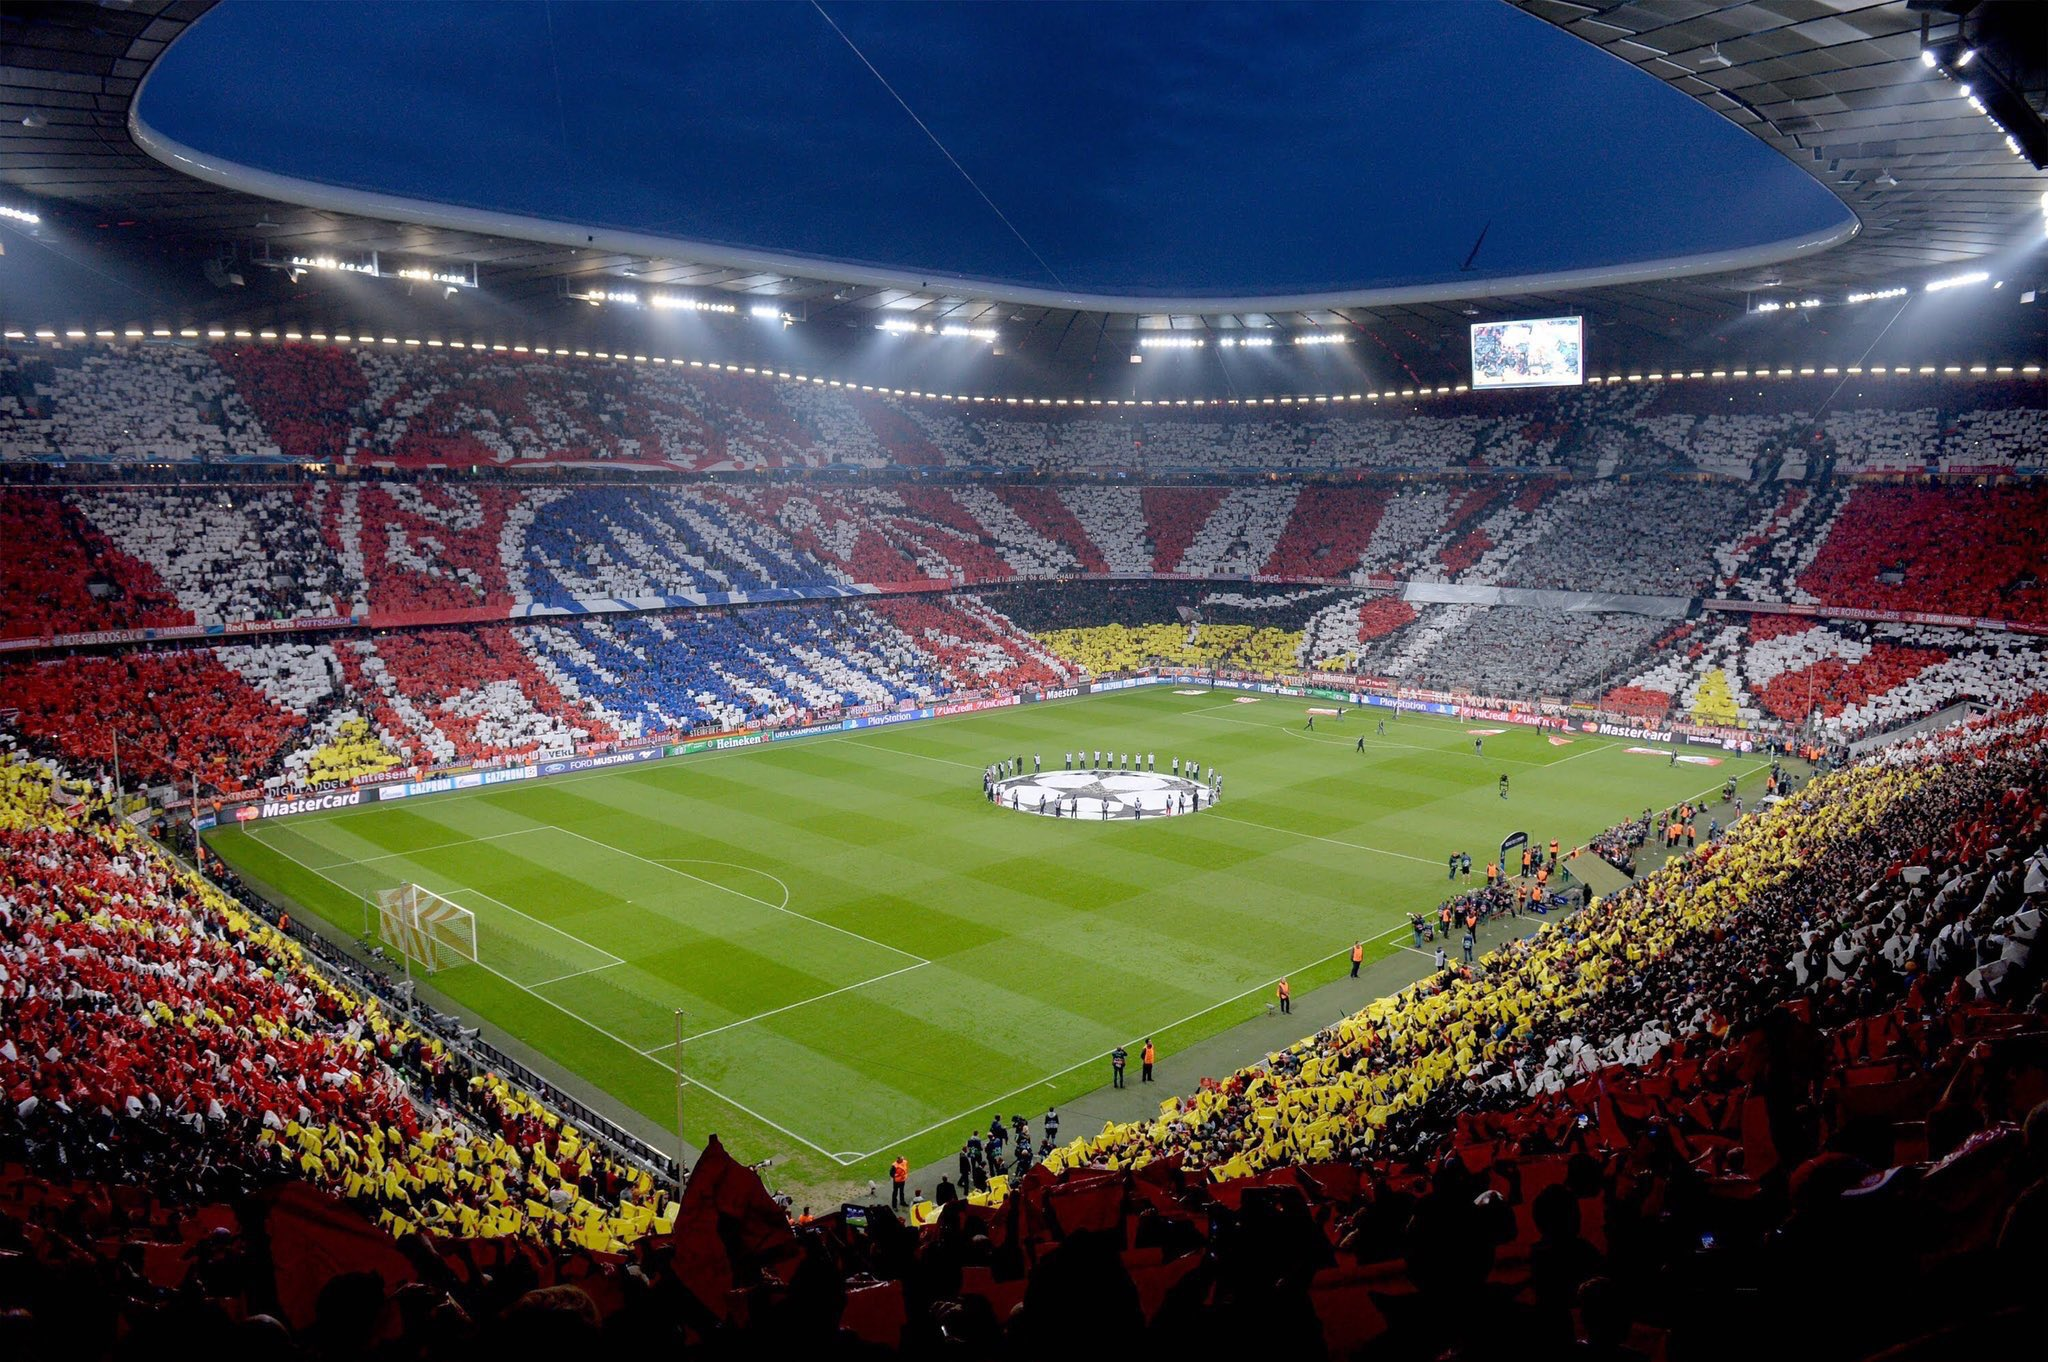 The most beautiful Football Stadiums in the world